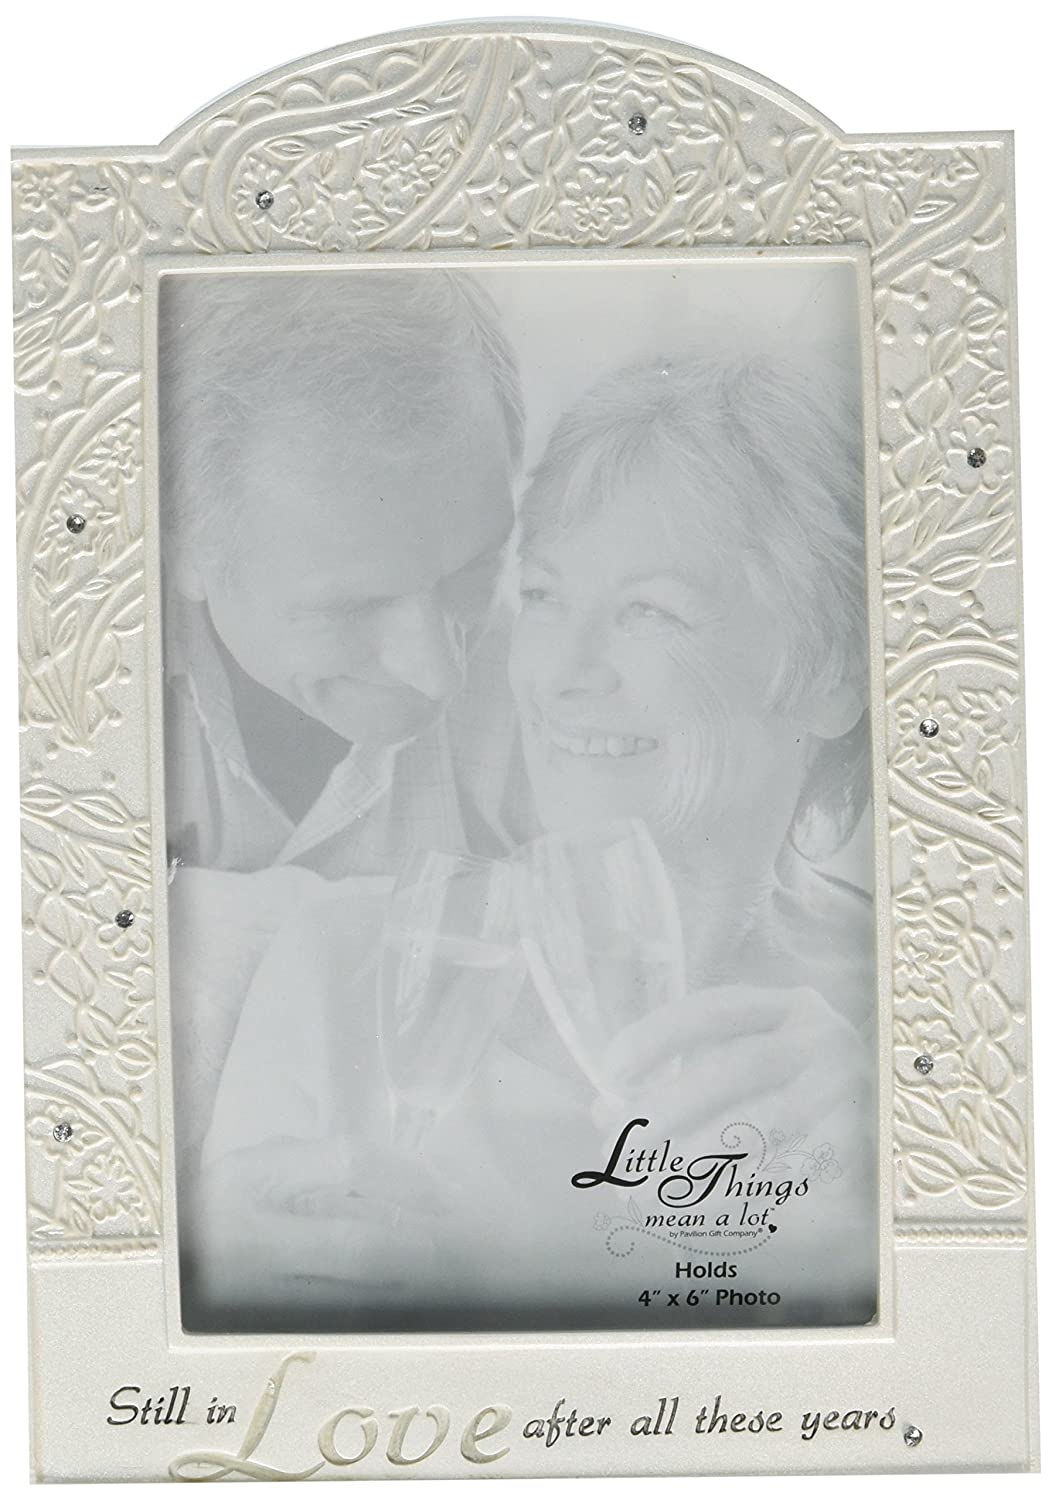 Little Things Mean A Lot Still in Love Picture Frame, 5 by 8-Inch, Holds 4 by 6-Inch Photo Pavilion Gift Company 74613